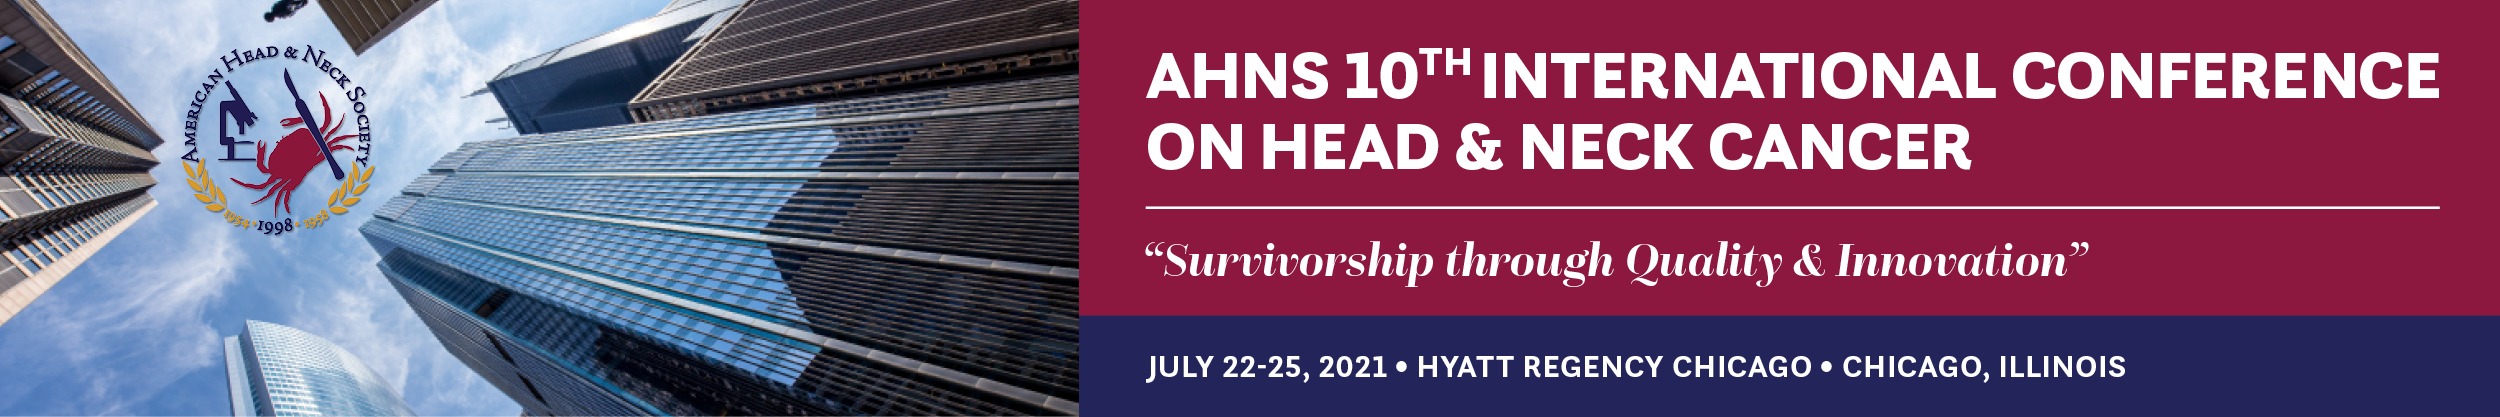 AHNS 10th International Conference on Head and Neck Cancer